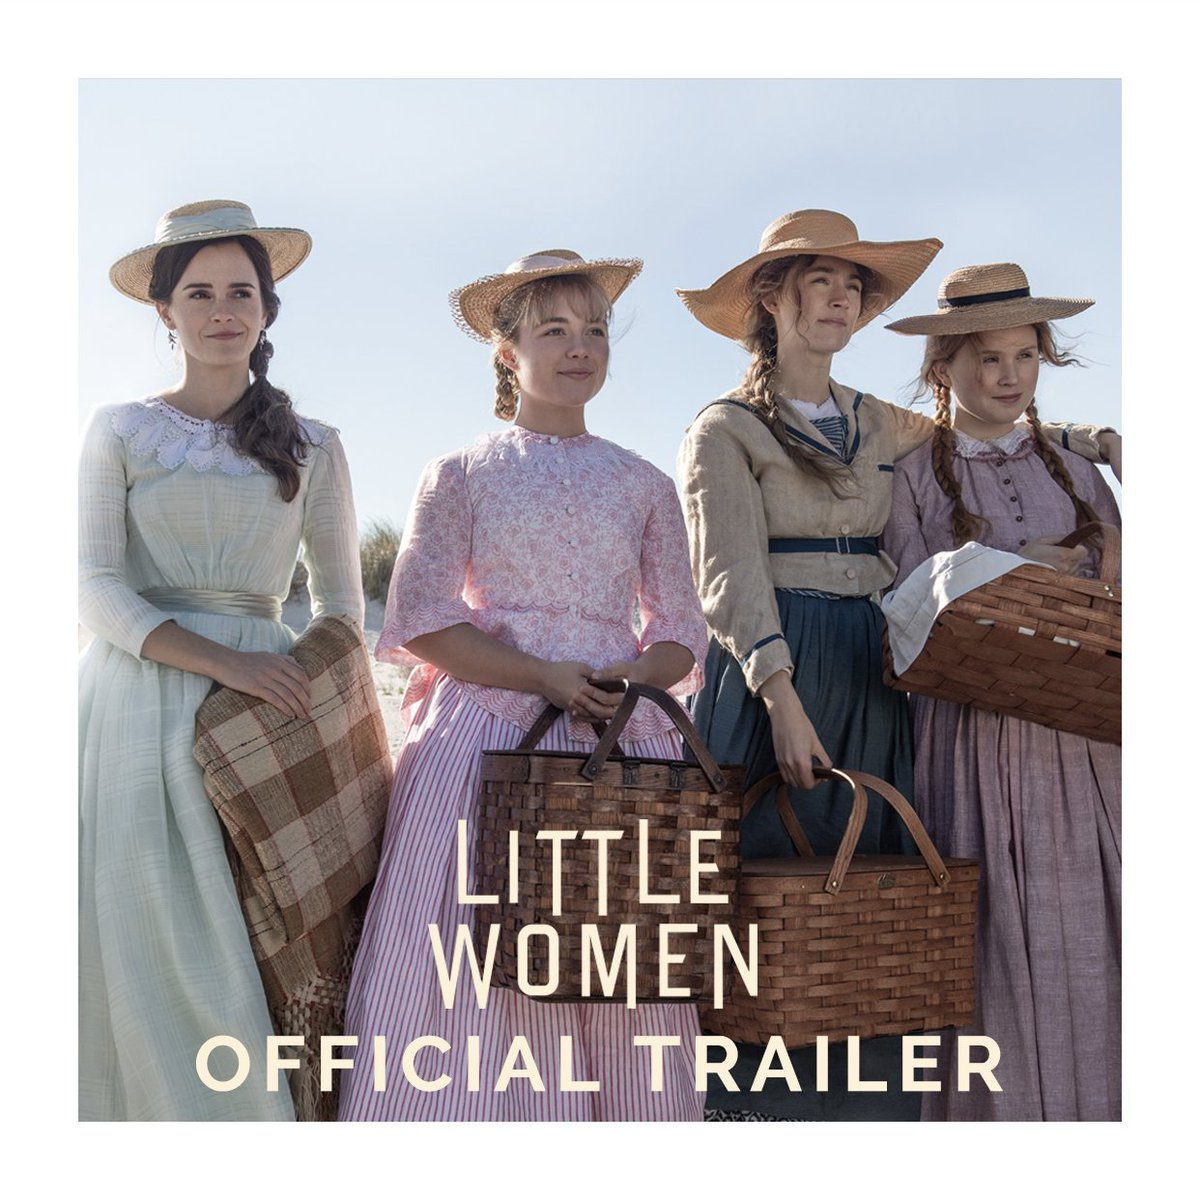 The Little Women Trailer Is Finally Here—And People Are Very Excited